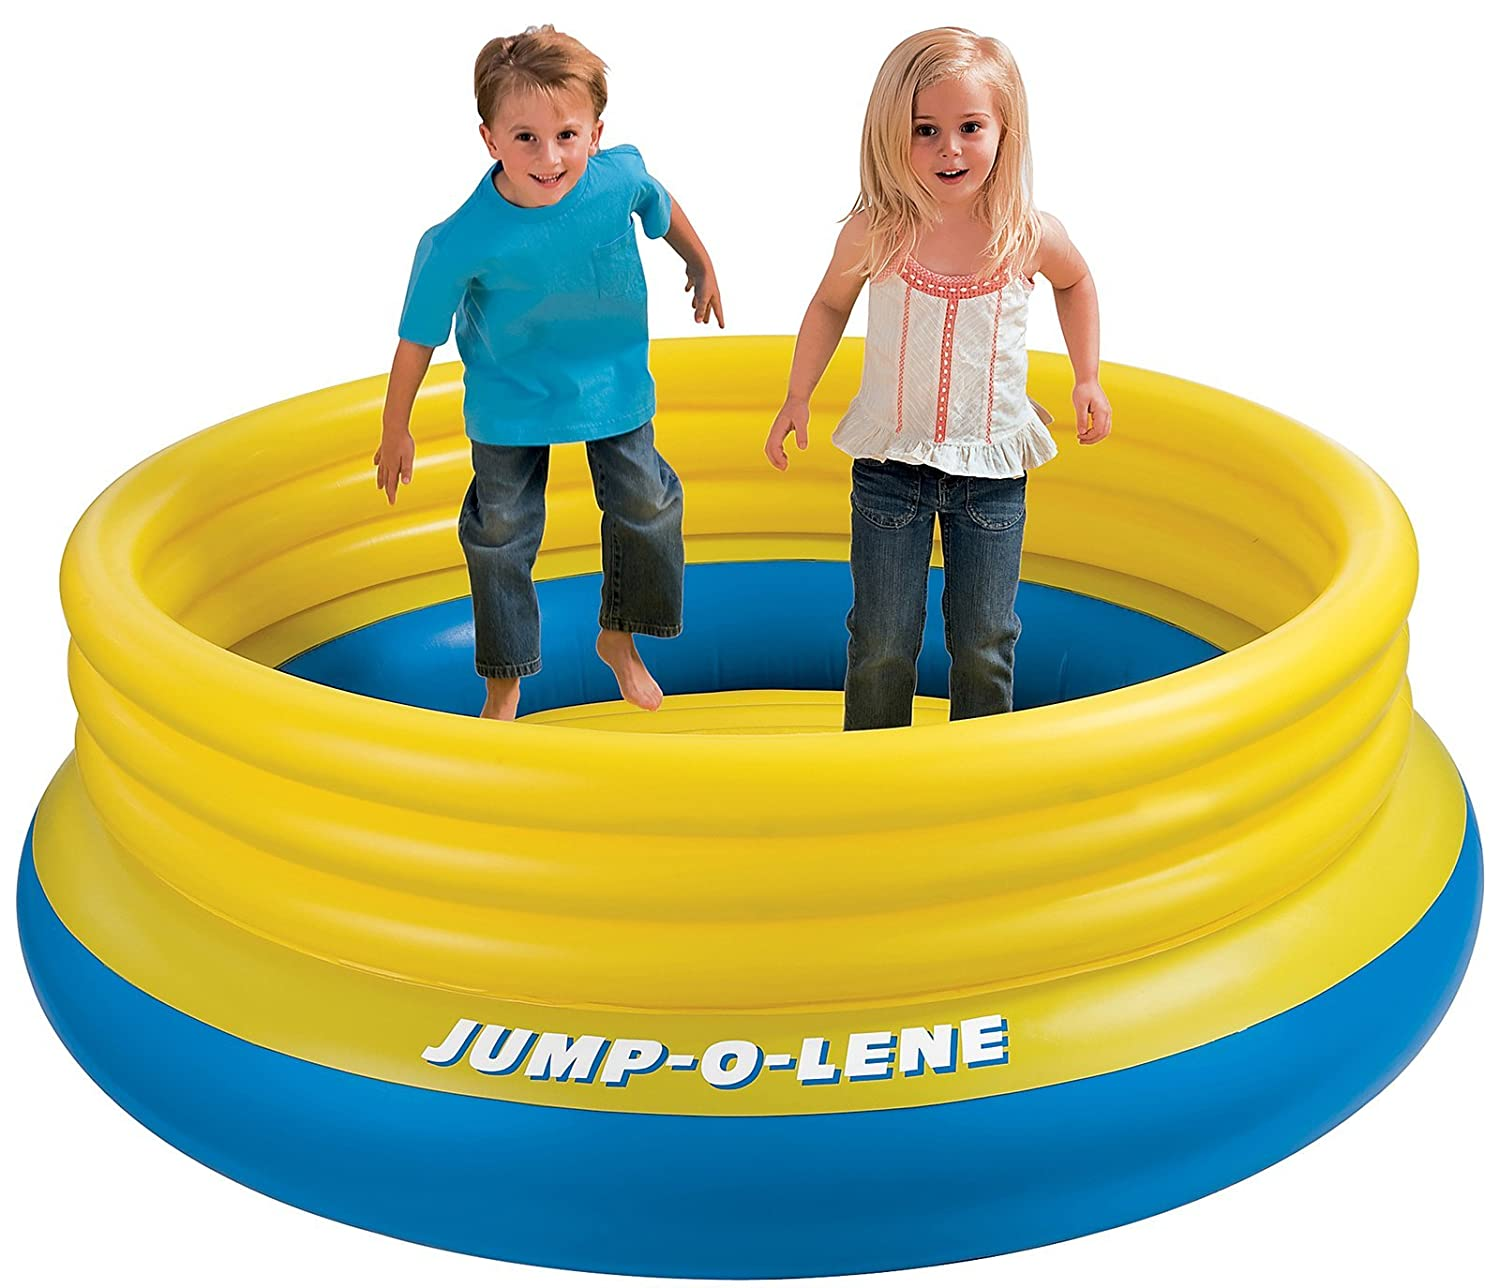 Jump-o-lene Children's Bouncer or Ball Pool Pond #48267 - Yellow & Blue Opaque